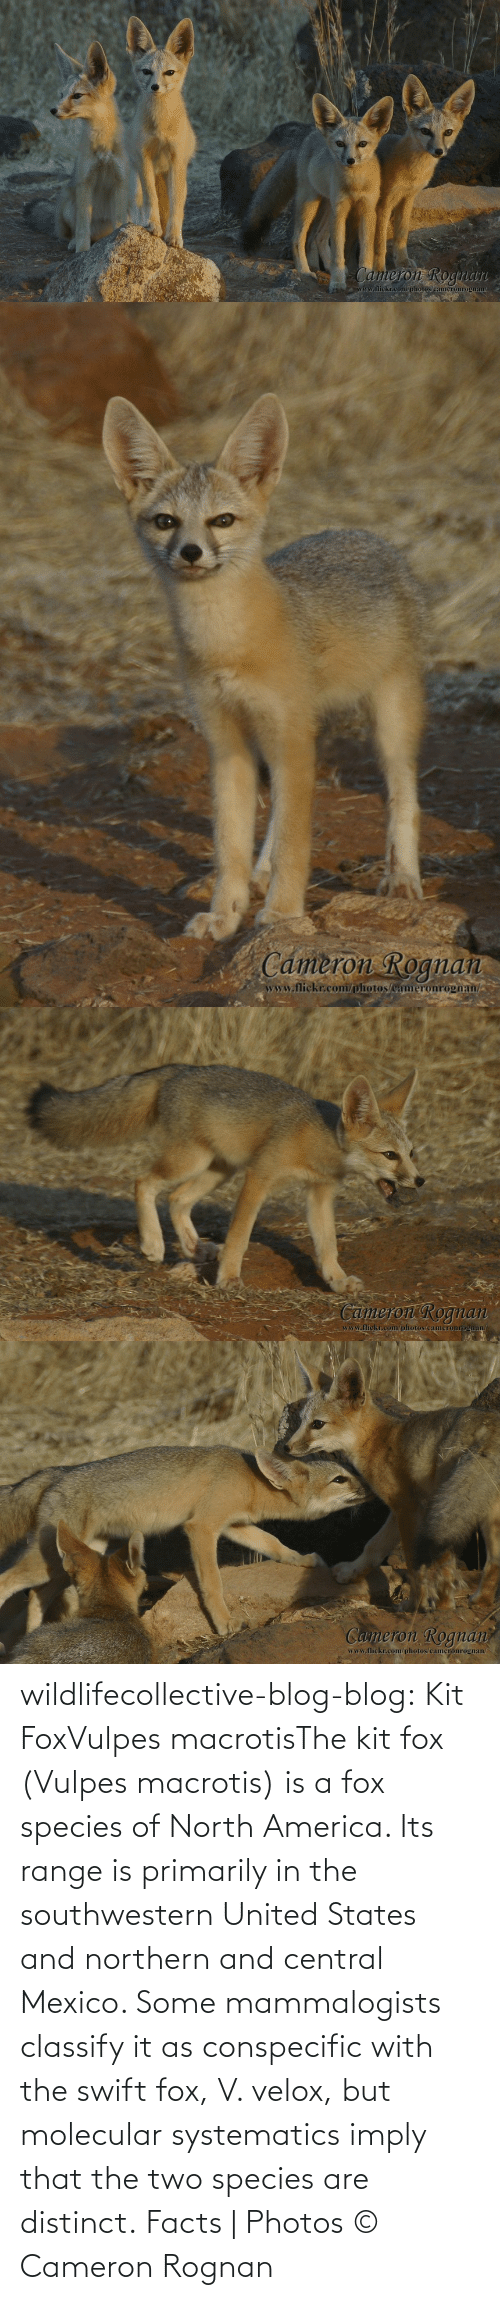 united states: wildlifecollective-blog-blog:  Kit FoxVulpes macrotisThe kit fox (Vulpes macrotis) is a fox species of North America. Its range is primarily in the southwestern United States and northern and central Mexico. Some mammalogists classify it as conspecific with the swift fox, V. velox, but molecular systematics imply that the two species are distinct. Facts | Photos © Cameron Rognan